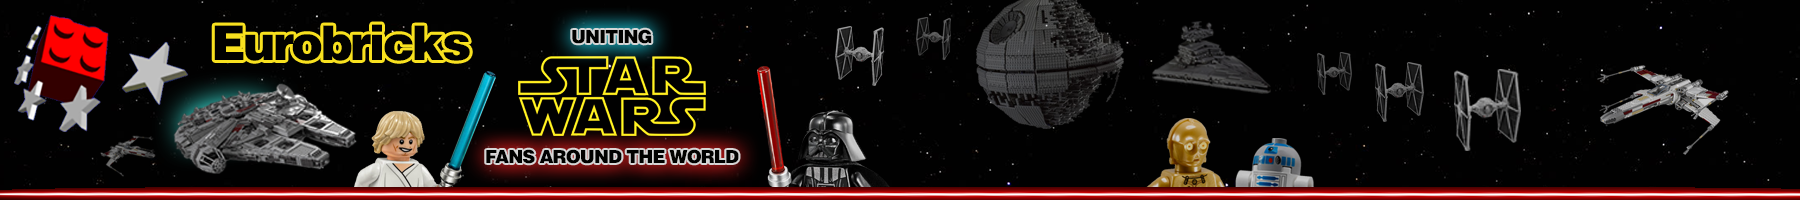 banner_starwars_new4.png